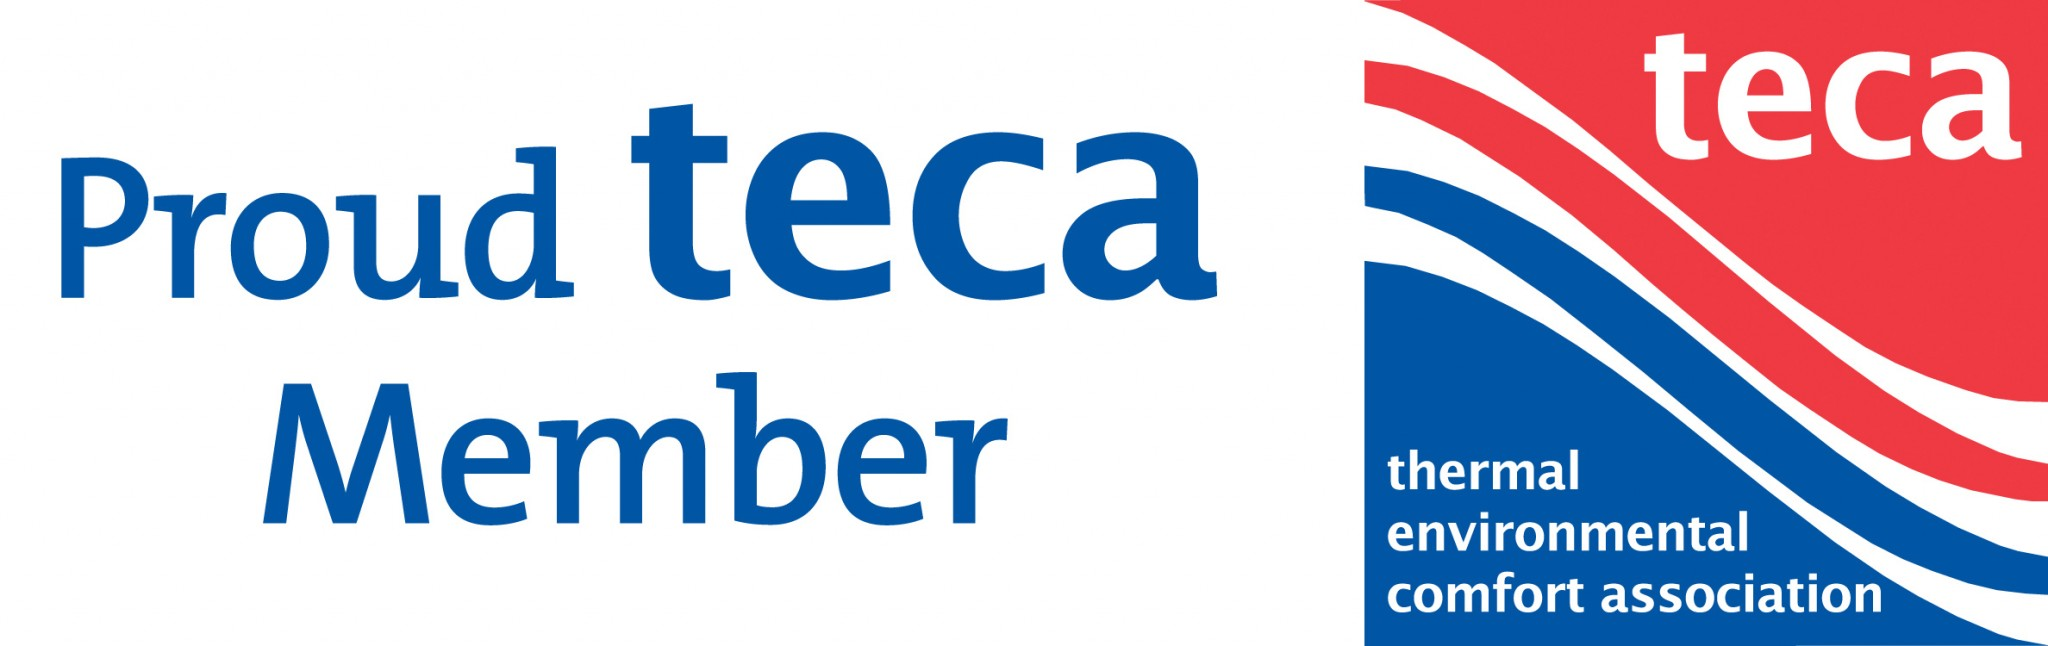 Thompson Heating is Member of TECA